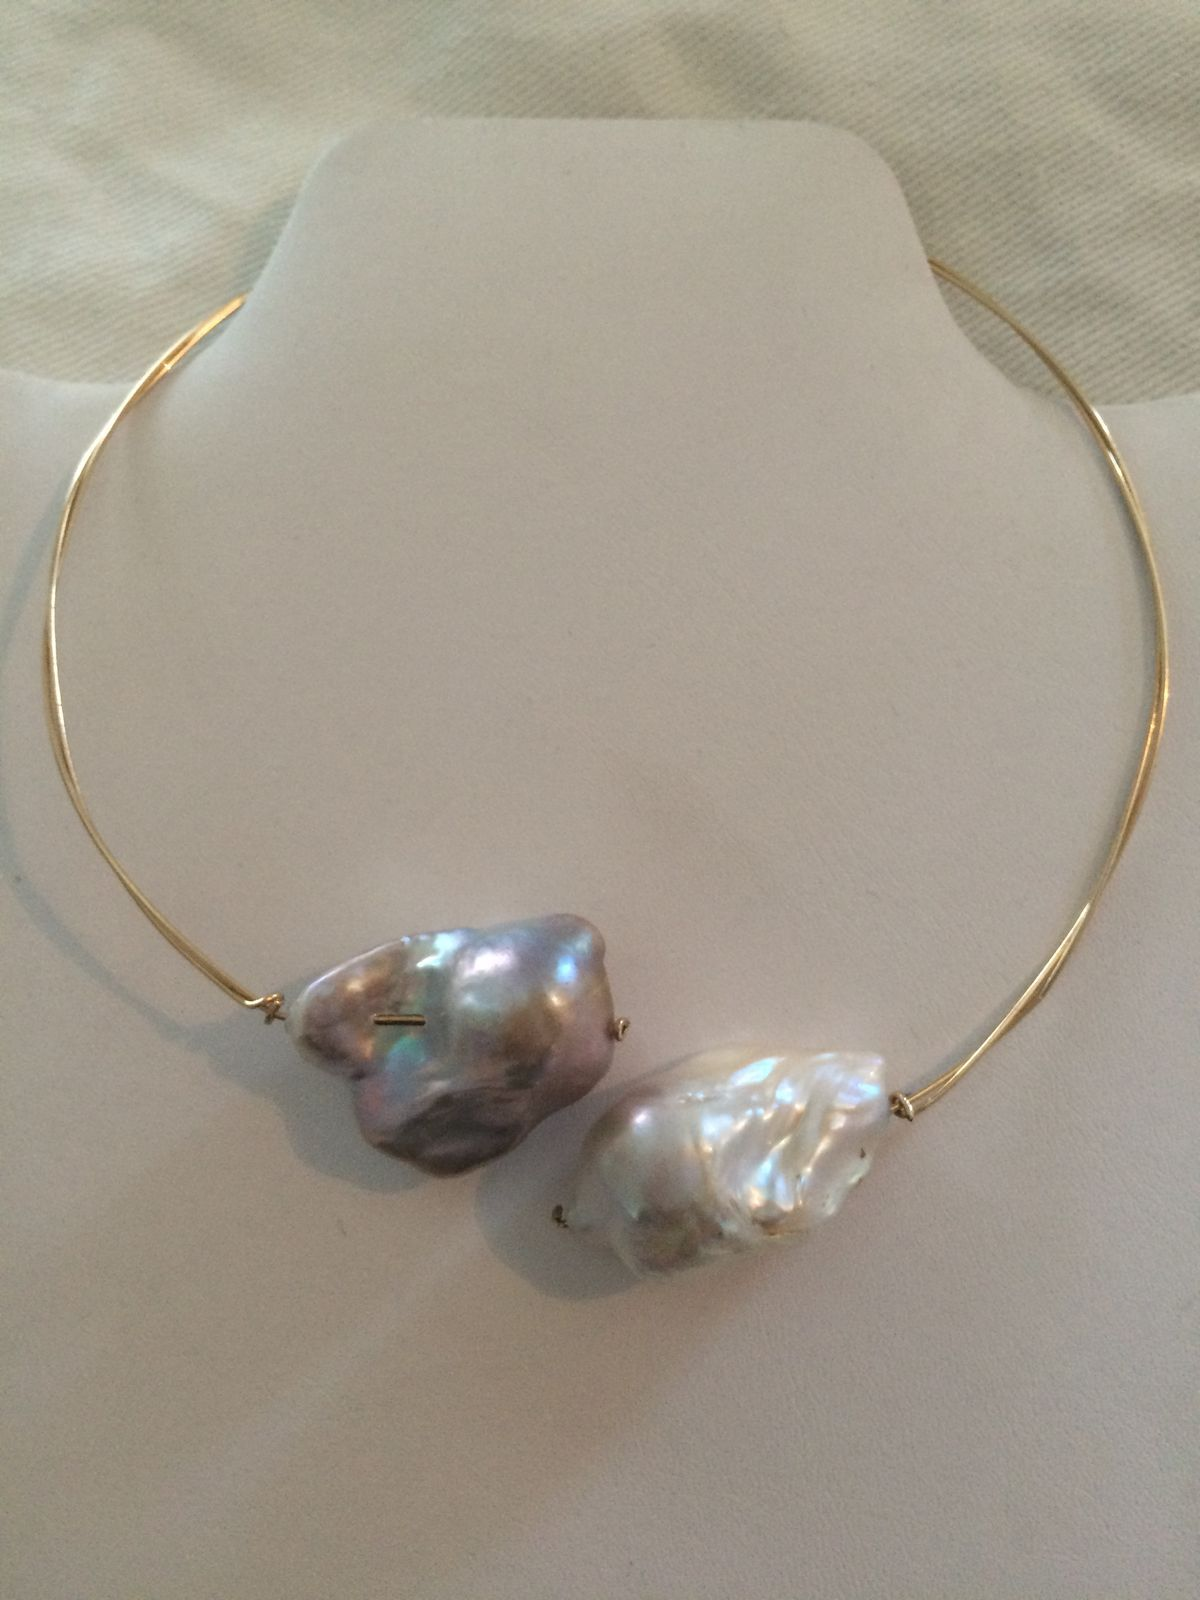 The Giant 2 Pearl 24 karat gold filled wire wrapped necklace...up on the website and ready to order!